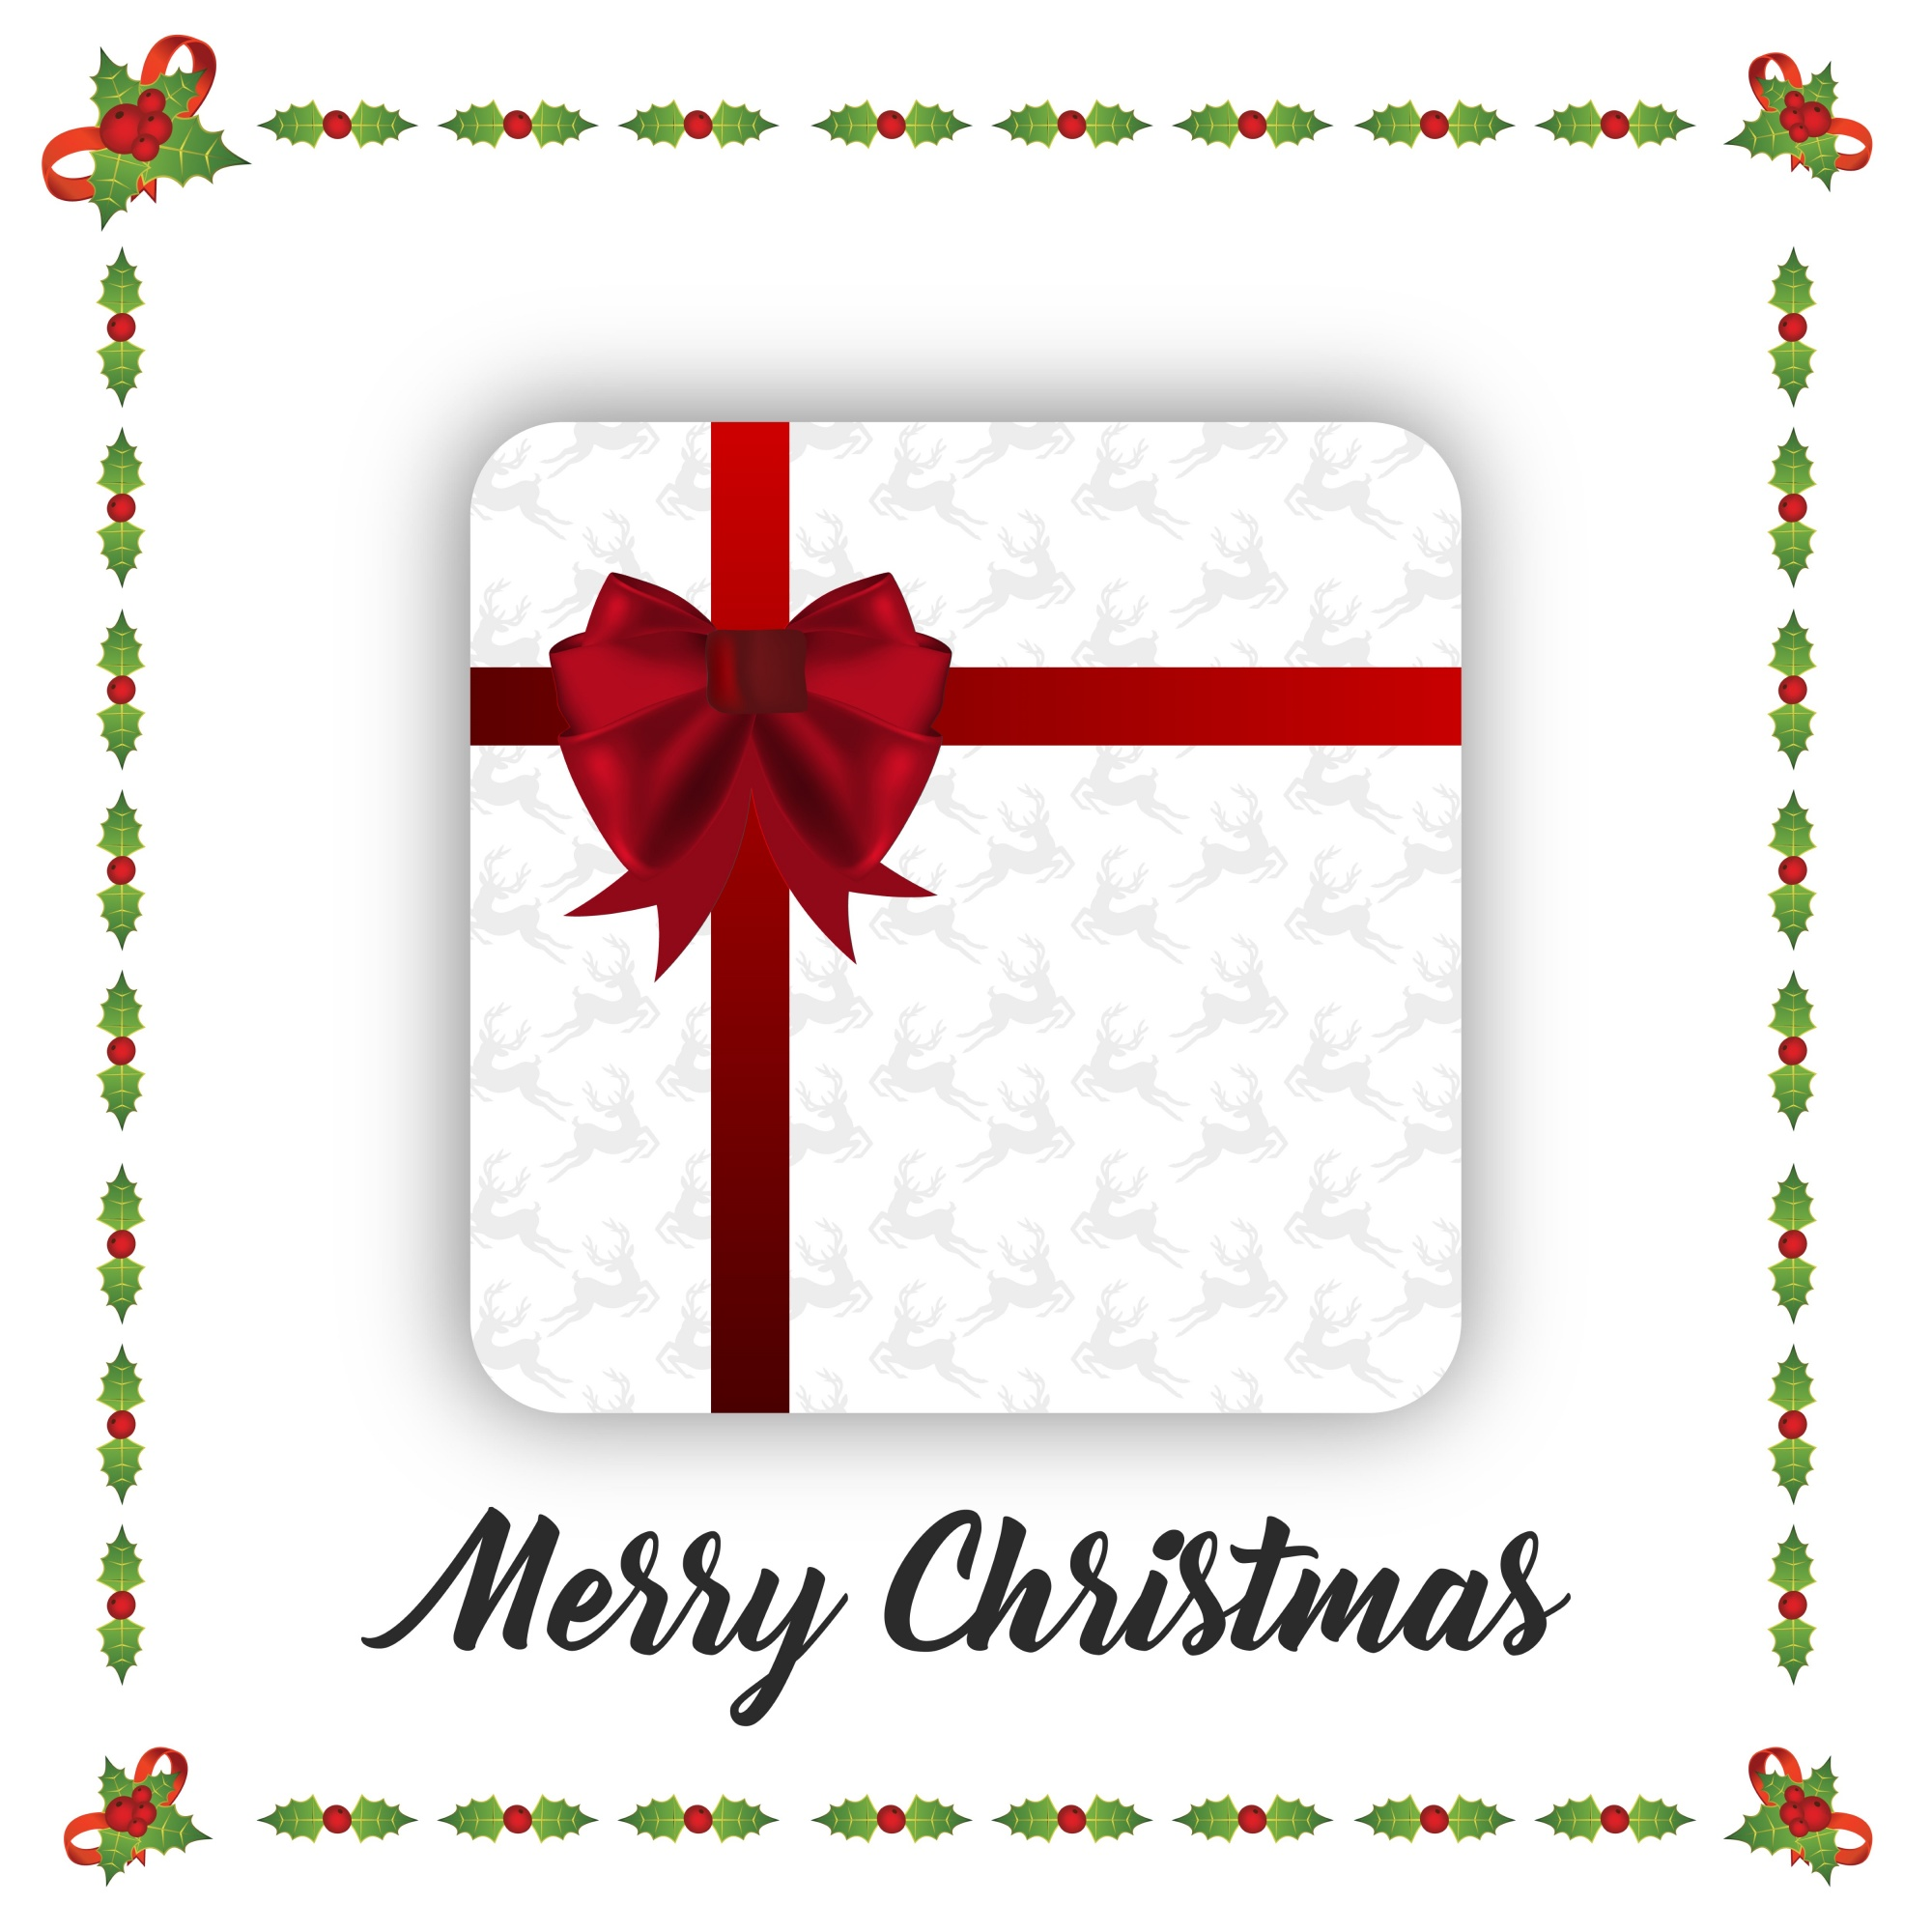 Christmas Poster having christmas giftbox and frame on white background with tpography